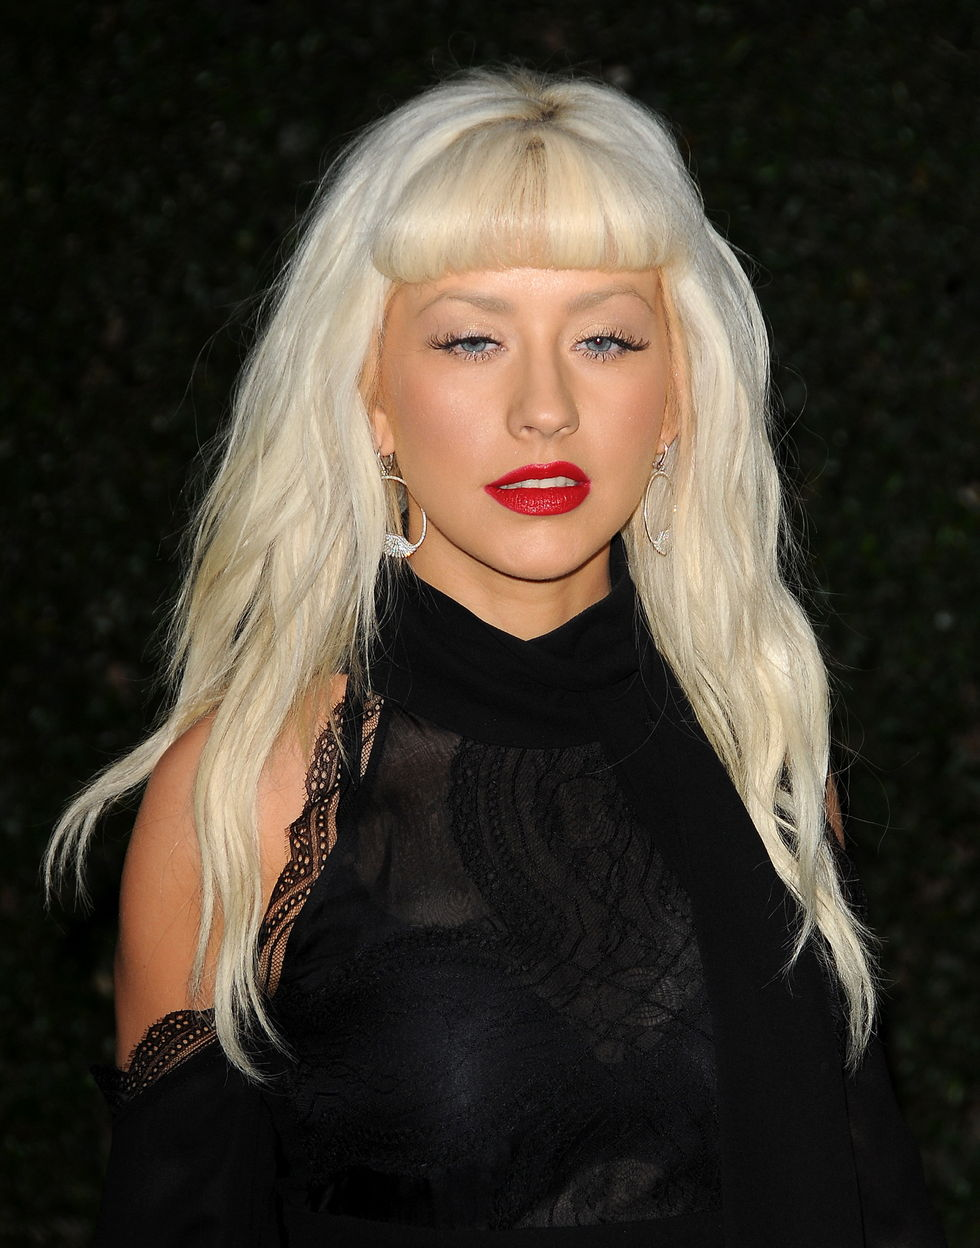 christina-aguilera-beautylight-book-launch-in-beverly-hills-01